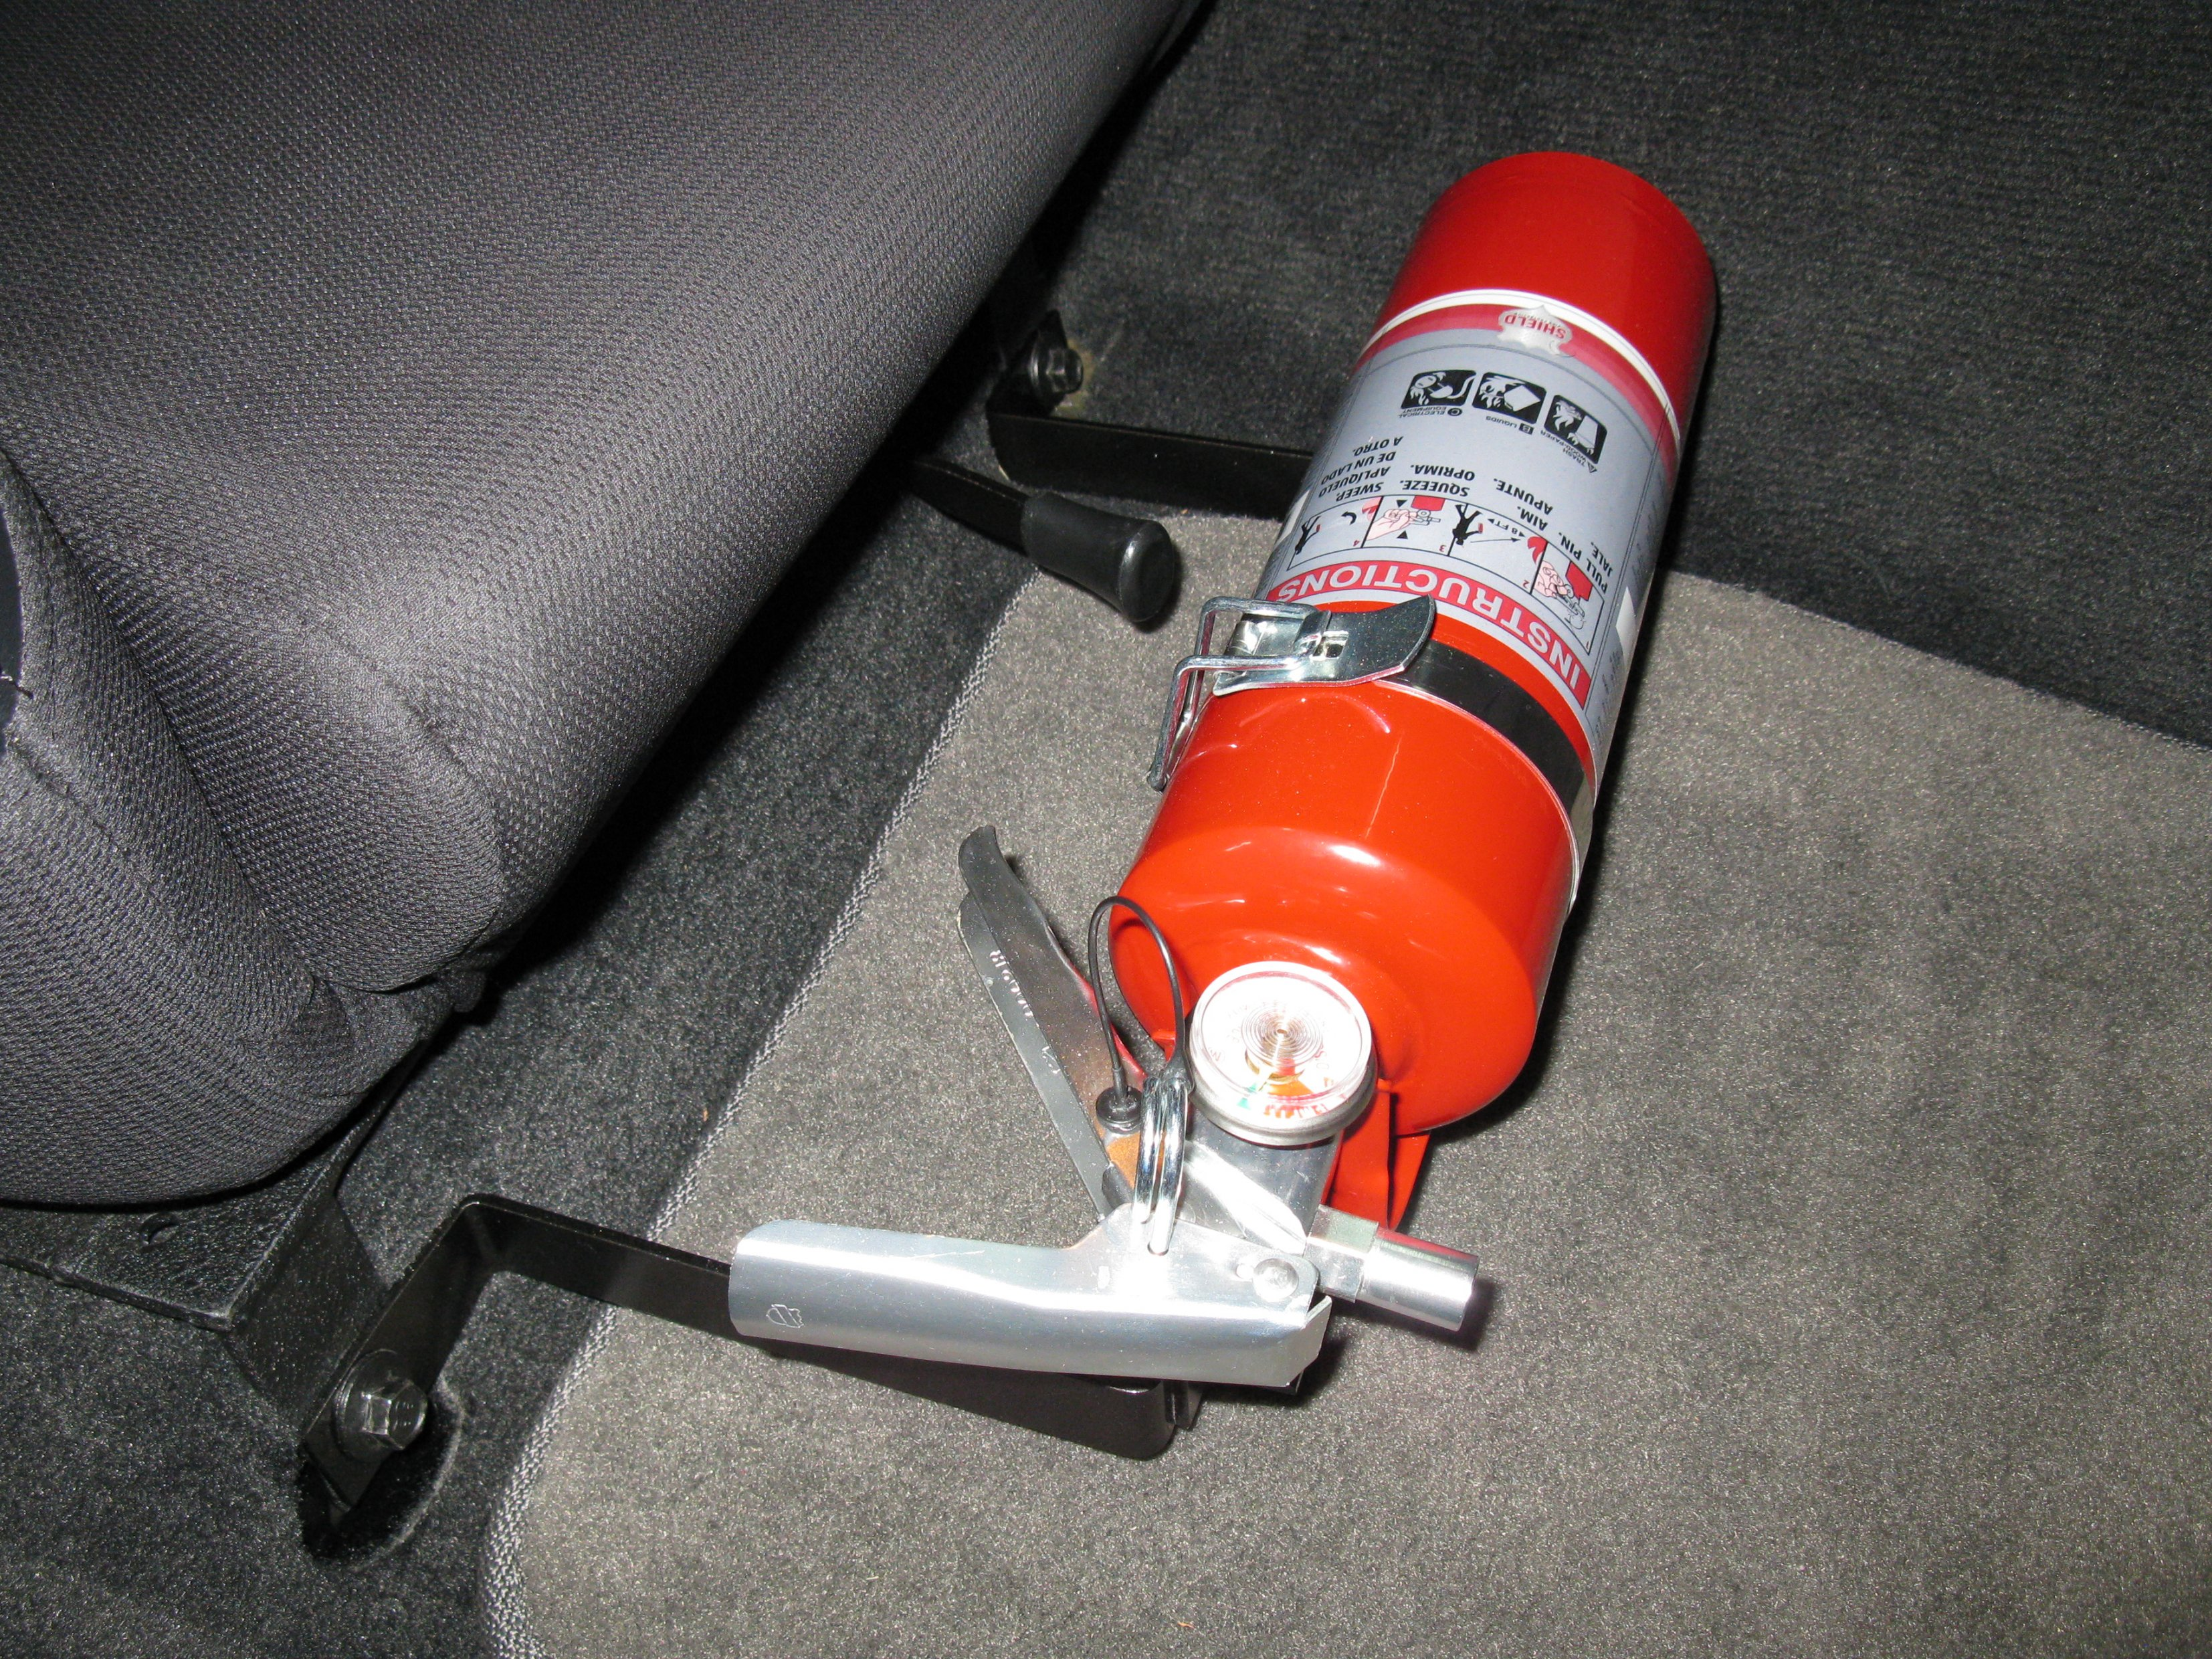 Click image for larger version  Name:Inside of car 002.jpg Views:219 Size:2.06 MB ID:133512